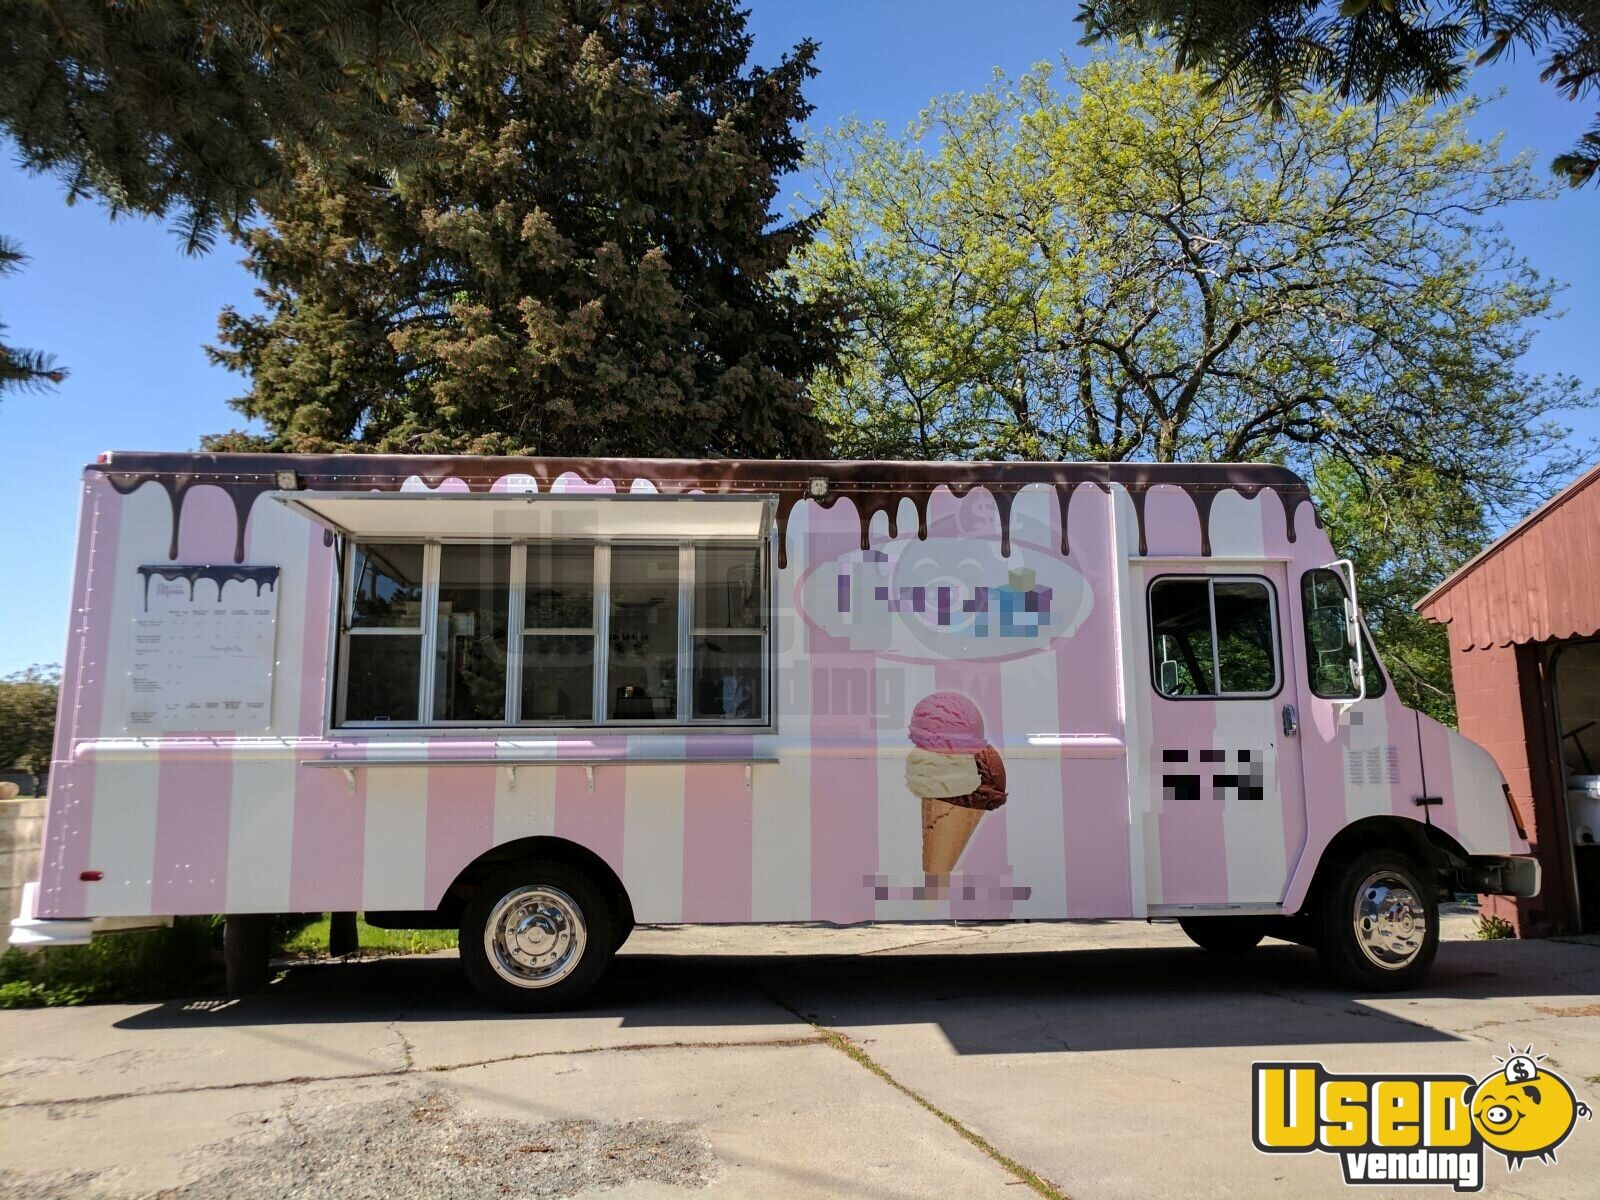 Ice Cream Trucks For Sale >> Details About Used Chevy Ice Cream Truck For Sale In Utah